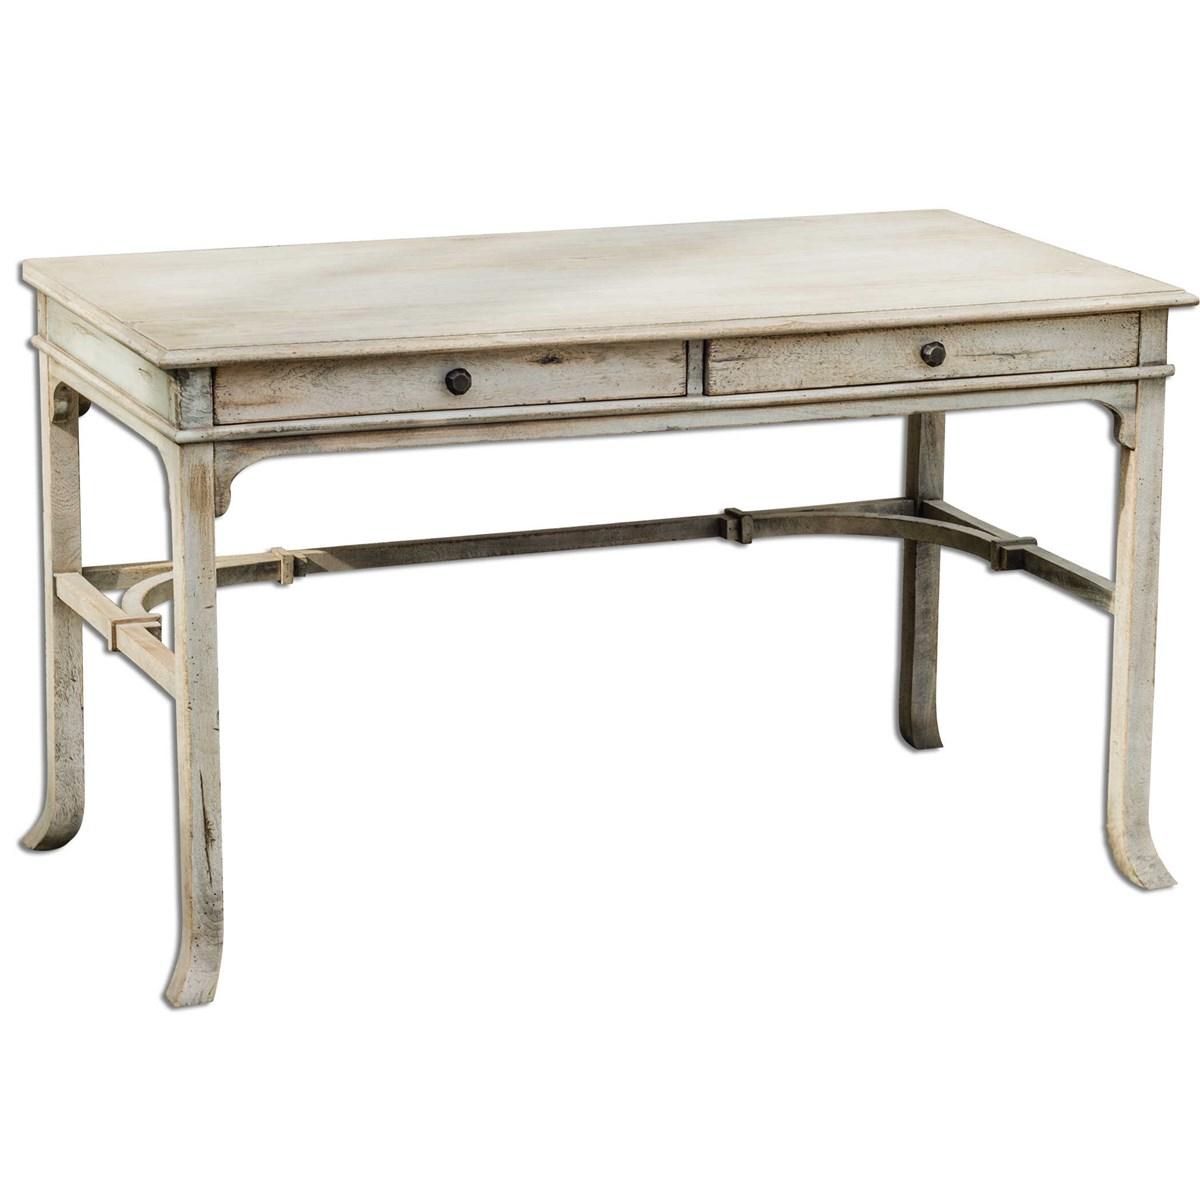 Bridget Writing Desk santa barbara design center 33118-